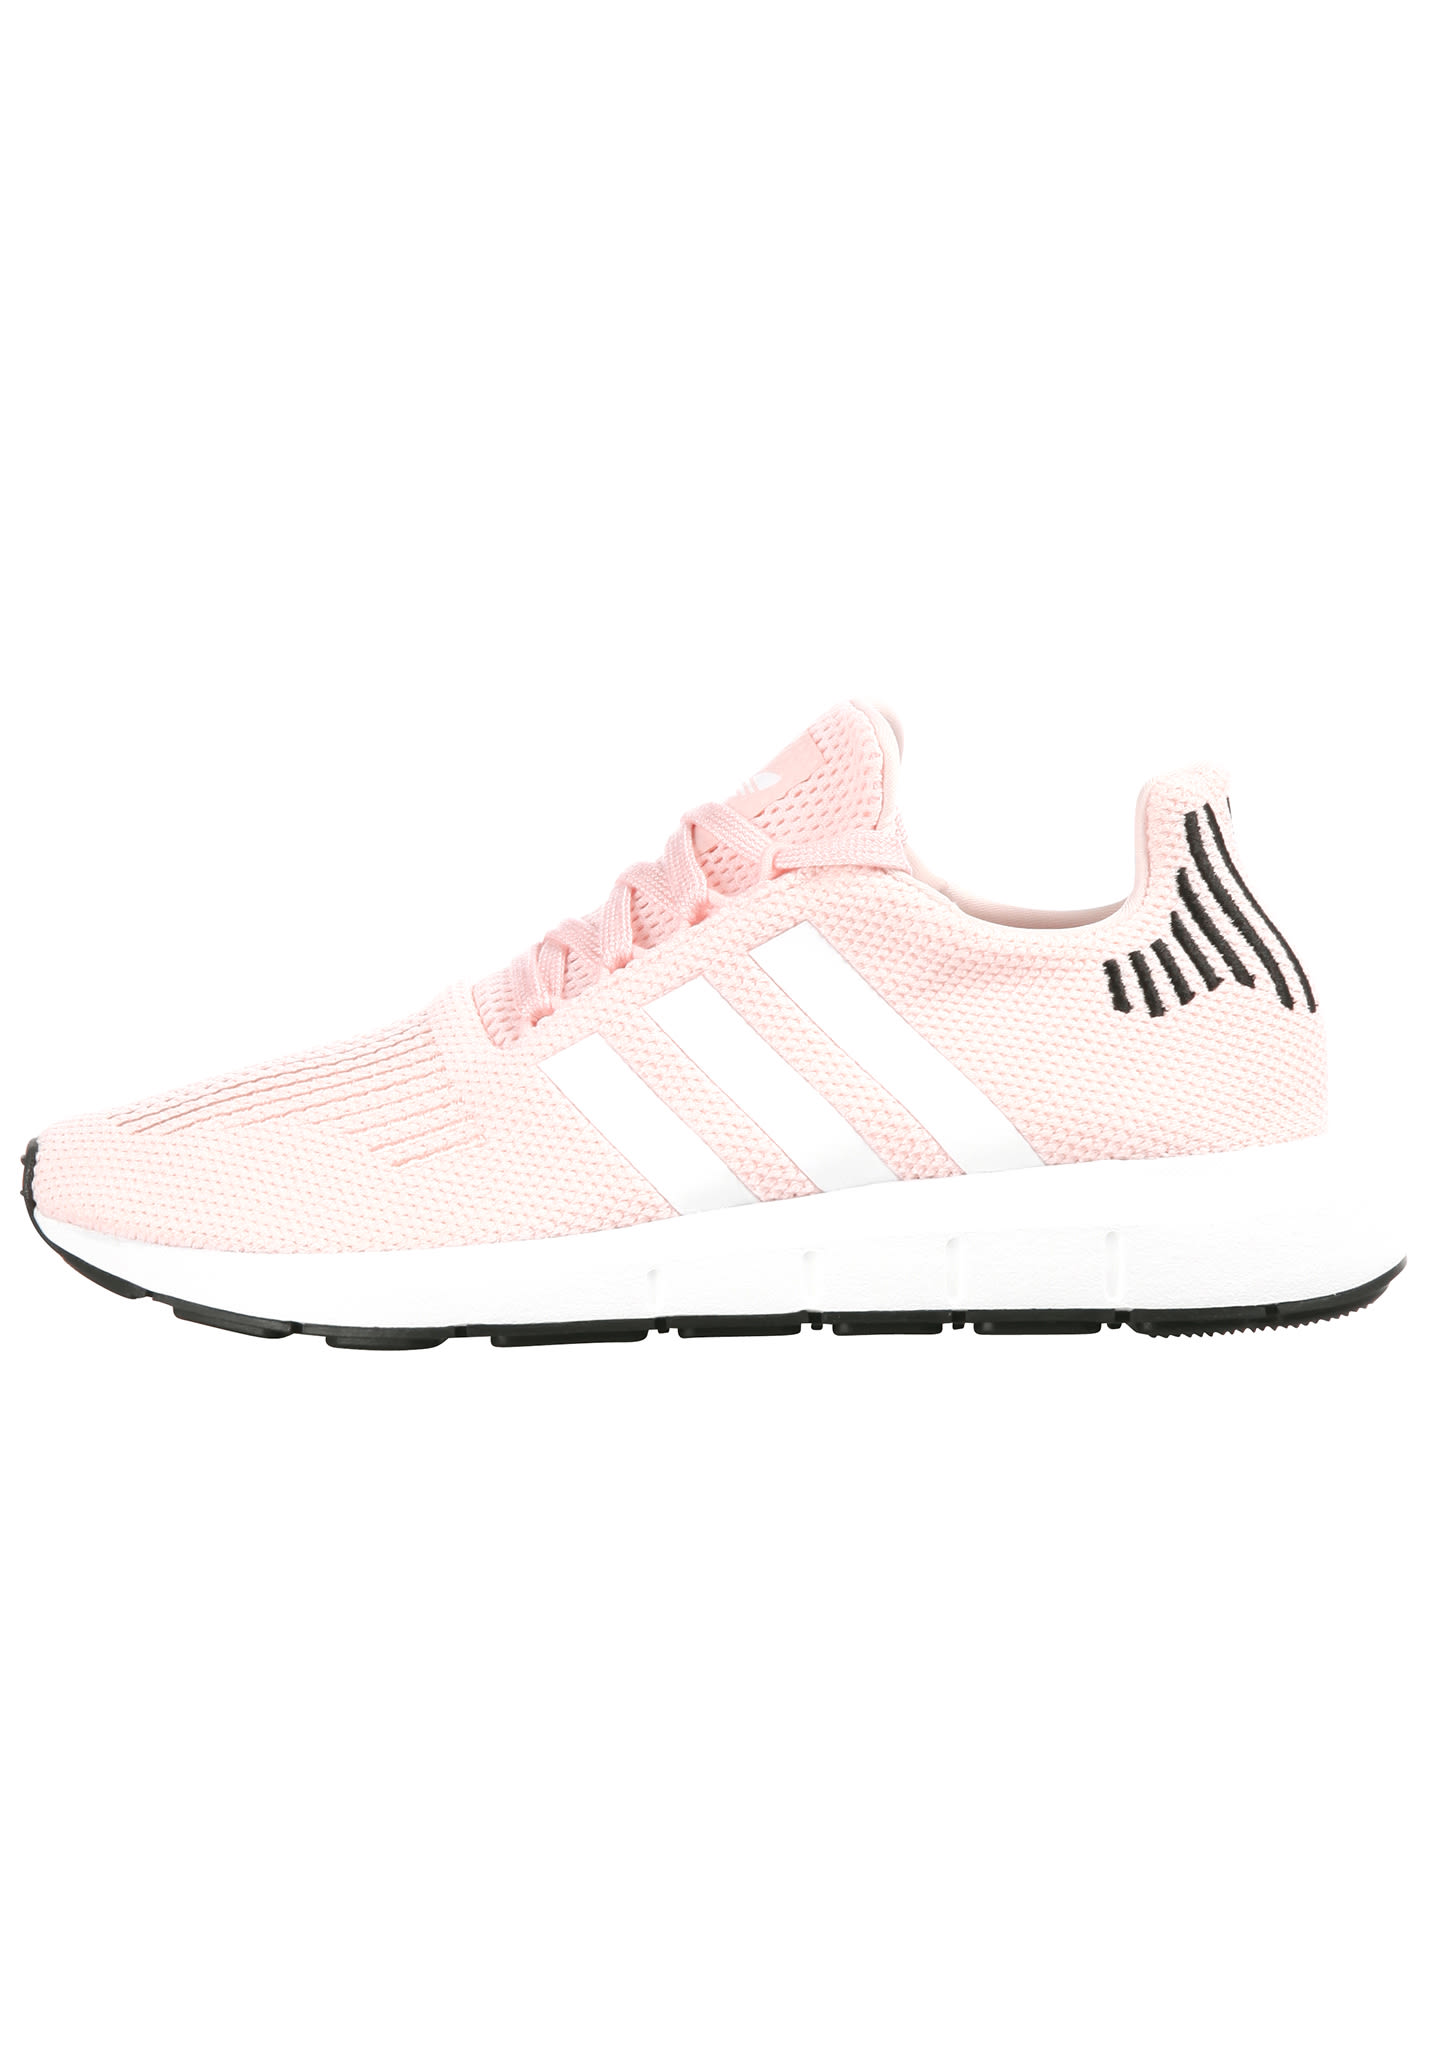 cozy fresh detailing special section ADIDAS ORIGINALS Swift Run - Sneakers for Women - Pink